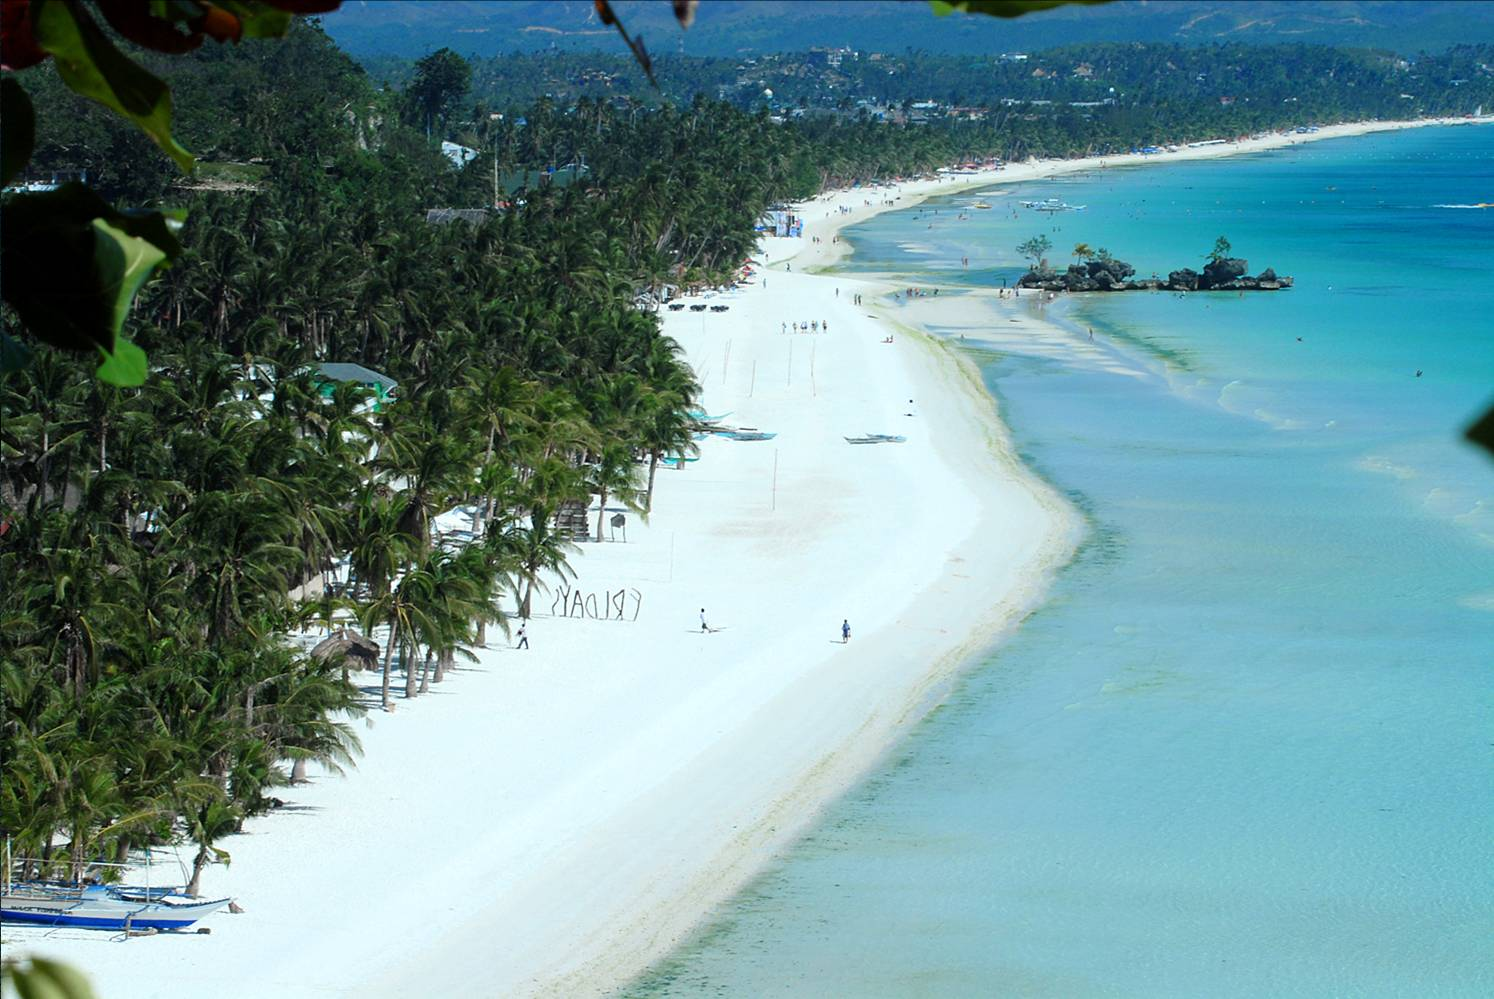 Holiday Destinations  Boracay Island, The Philippines  Travel Blog